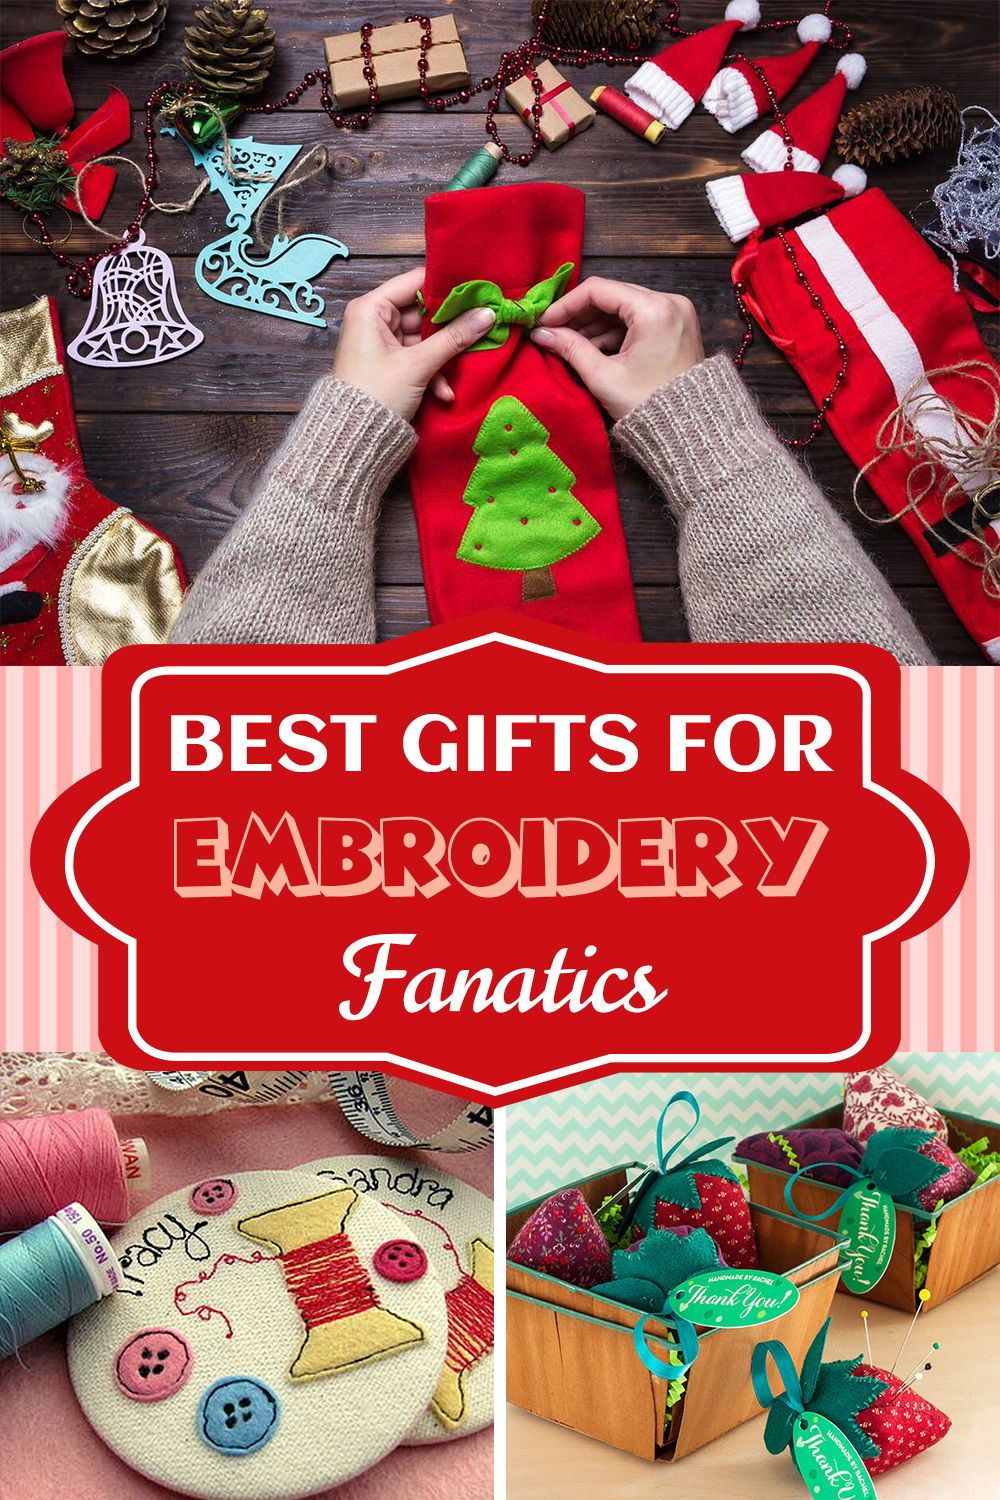 Pin On Gifts For Embroidery